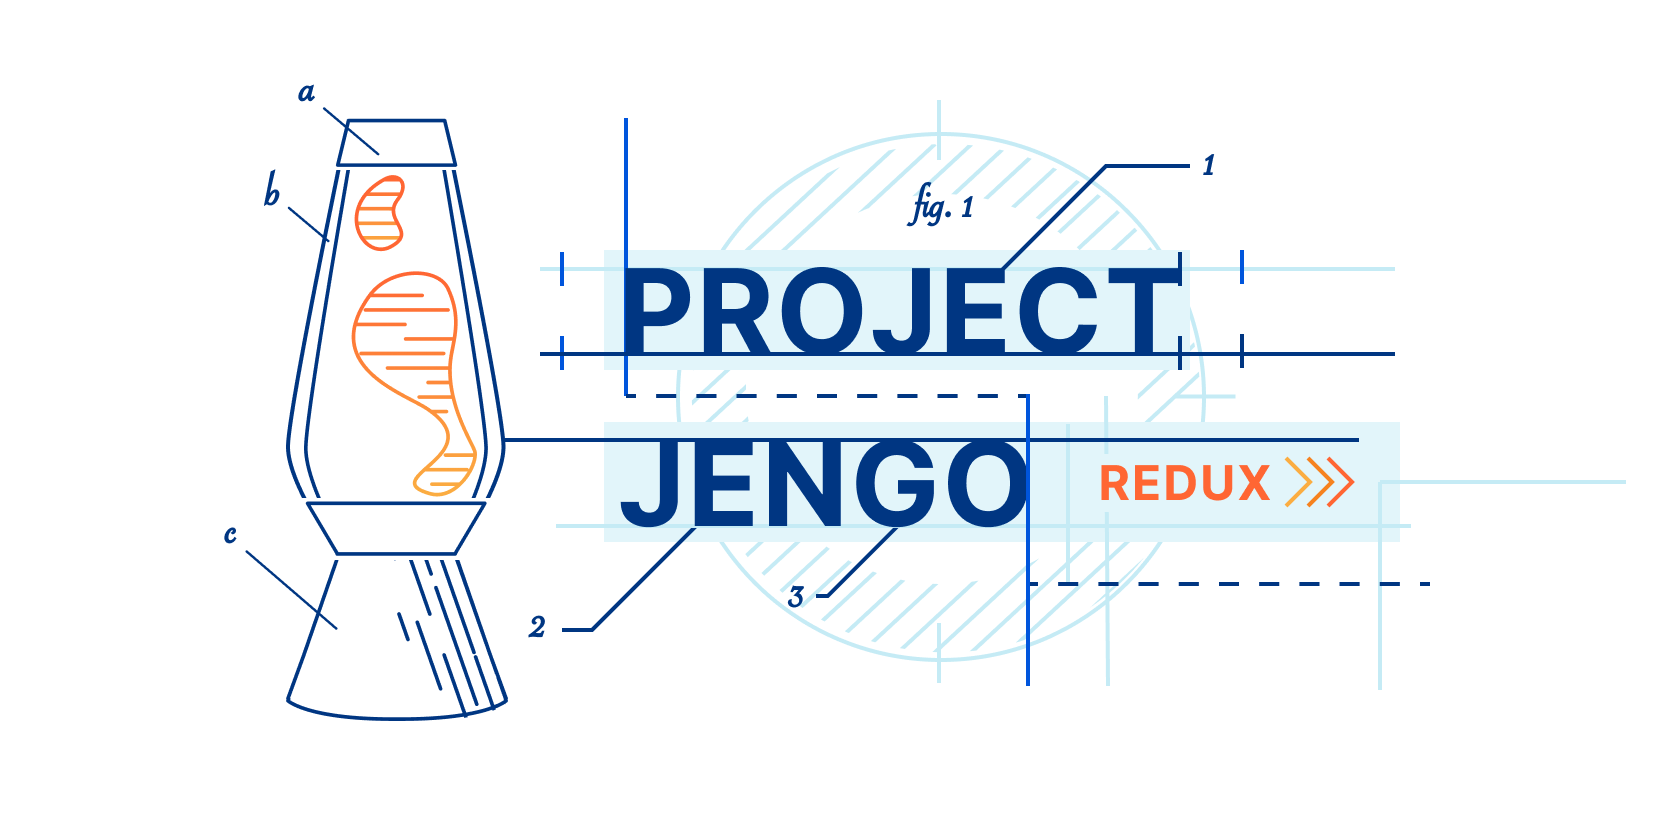 Project Jengo Redux: Cloudflare's Prior Art Search Bounty Returns